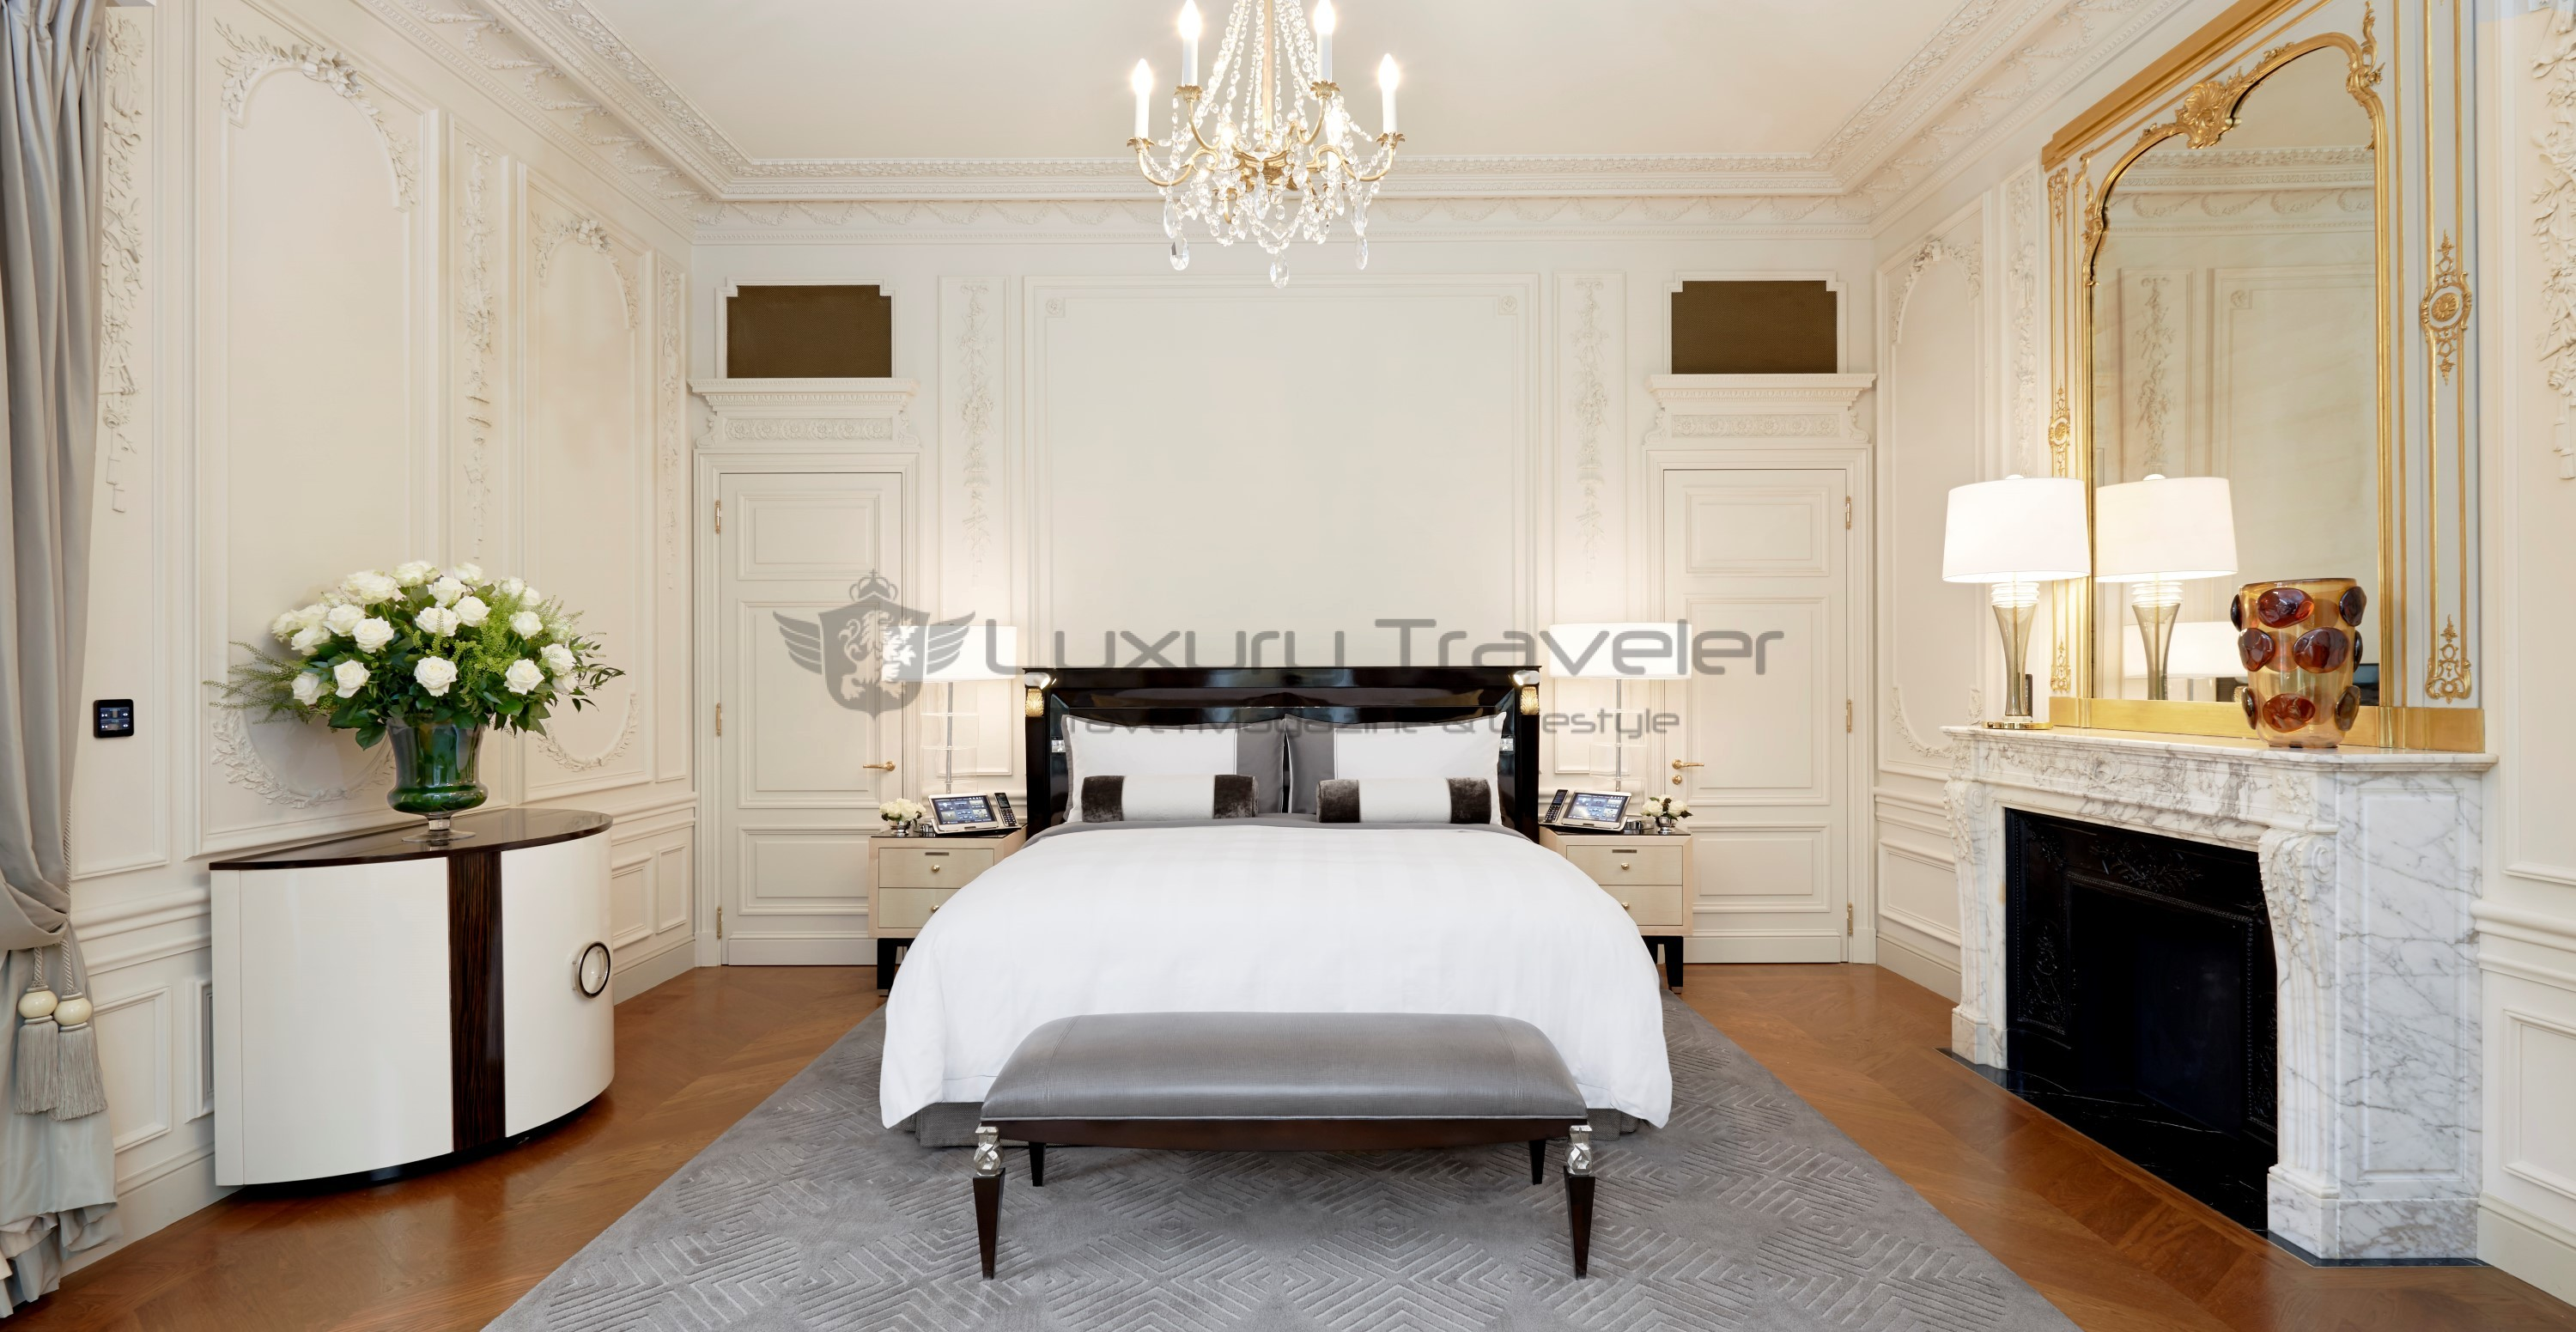 the peninsula luxury 5 star hotel paris luxury traveler. Black Bedroom Furniture Sets. Home Design Ideas